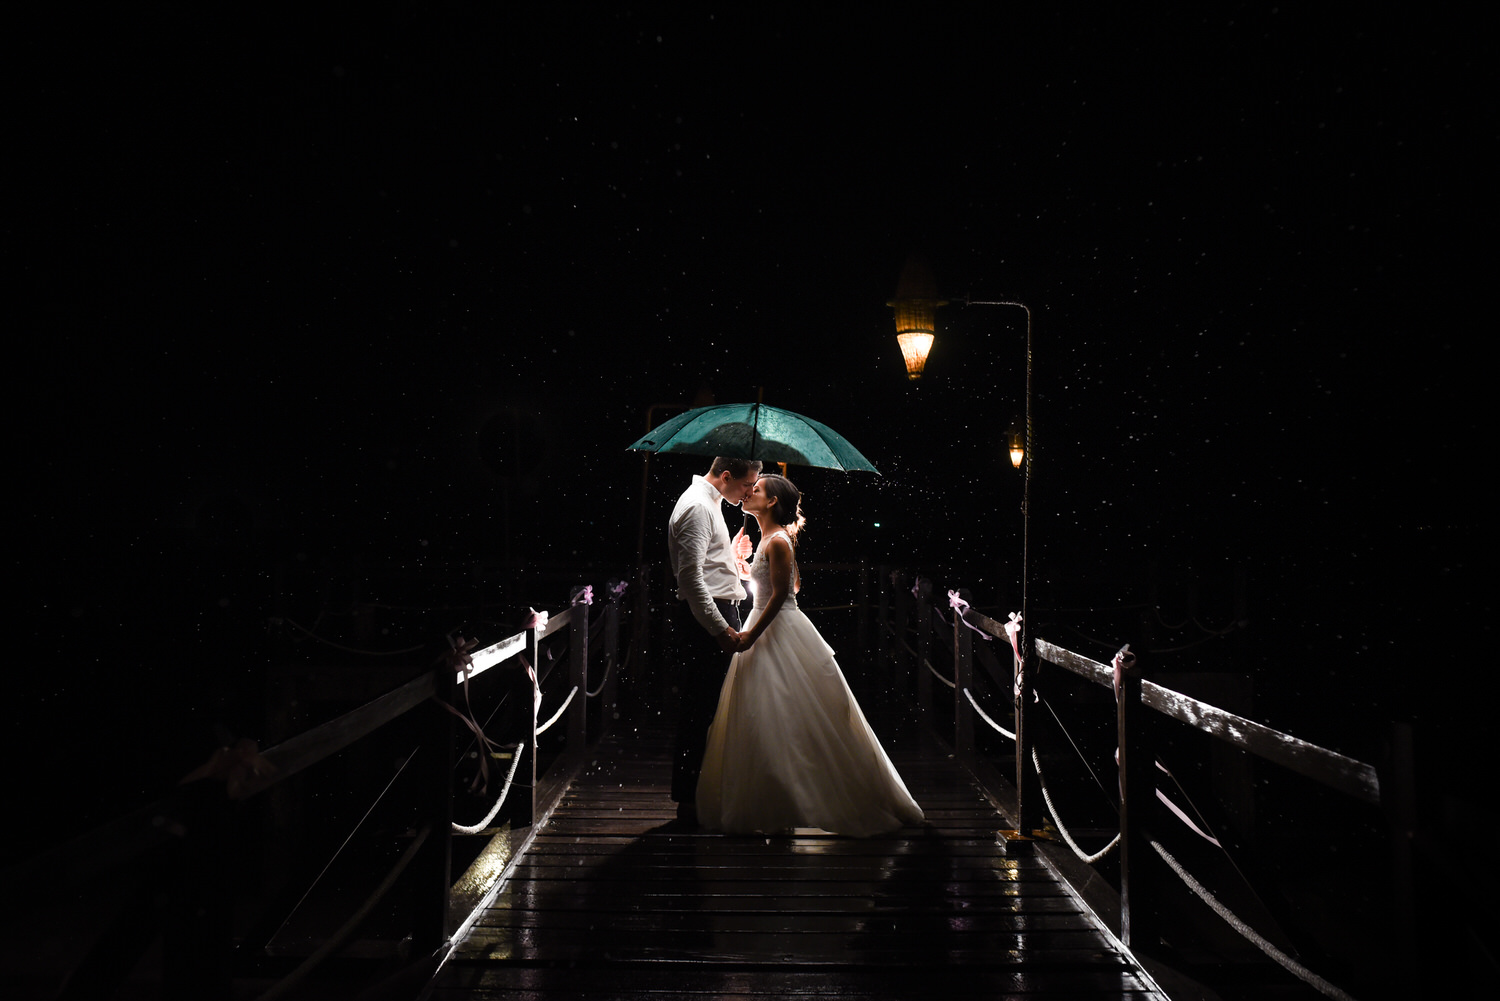 TheBest-Vietnam-Wedding-photography-71.jpg